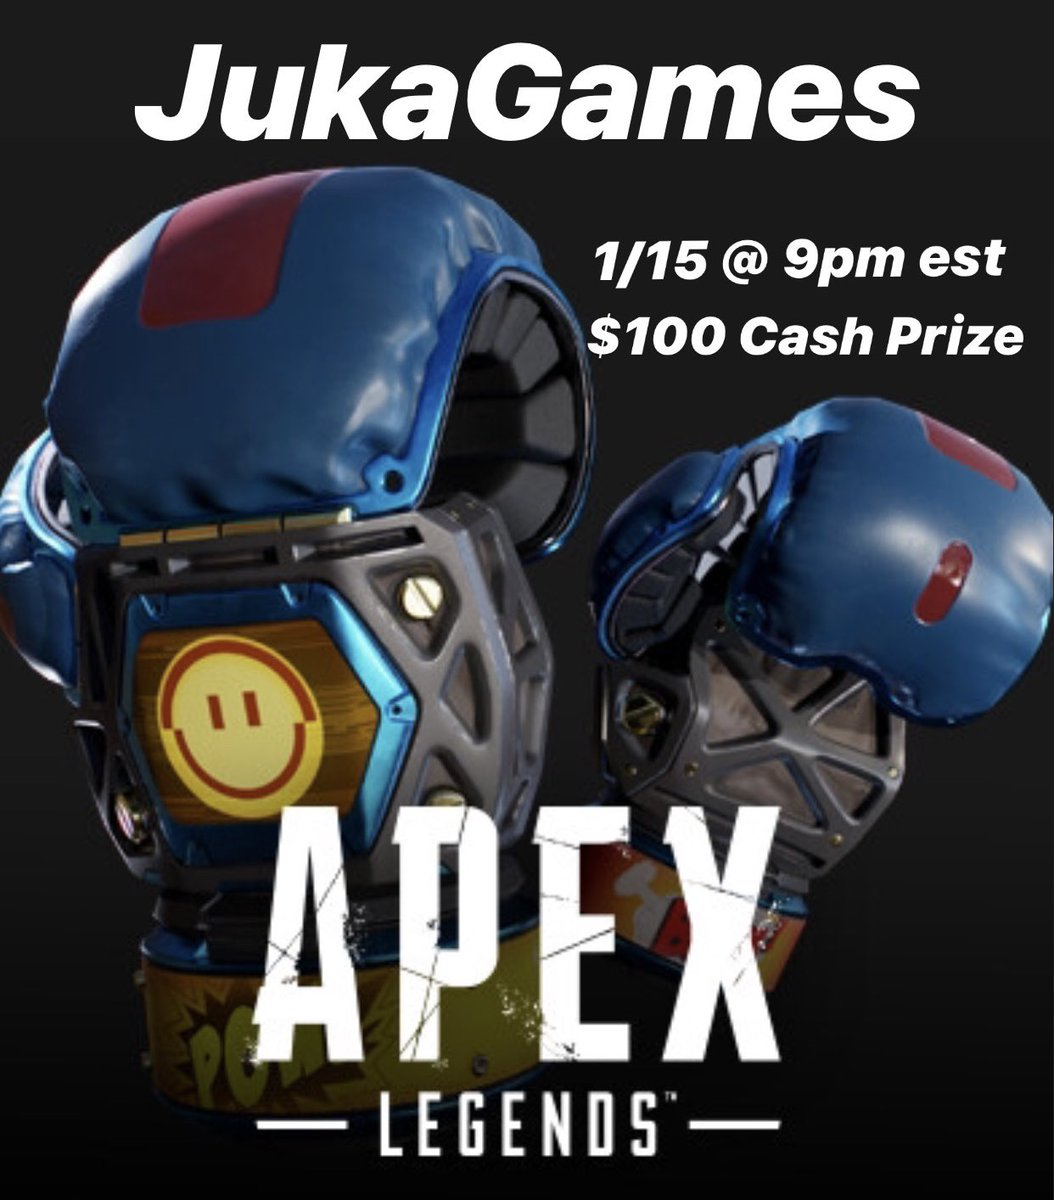 HisandHersLive - Melee Only Fight Club Private Server JukaGames this Friday. First come first serve. PC only $100 cash prize.   Individual event, no team needed.   Sign Up here:   Thank you to @agwas3 for sponsoring this event.